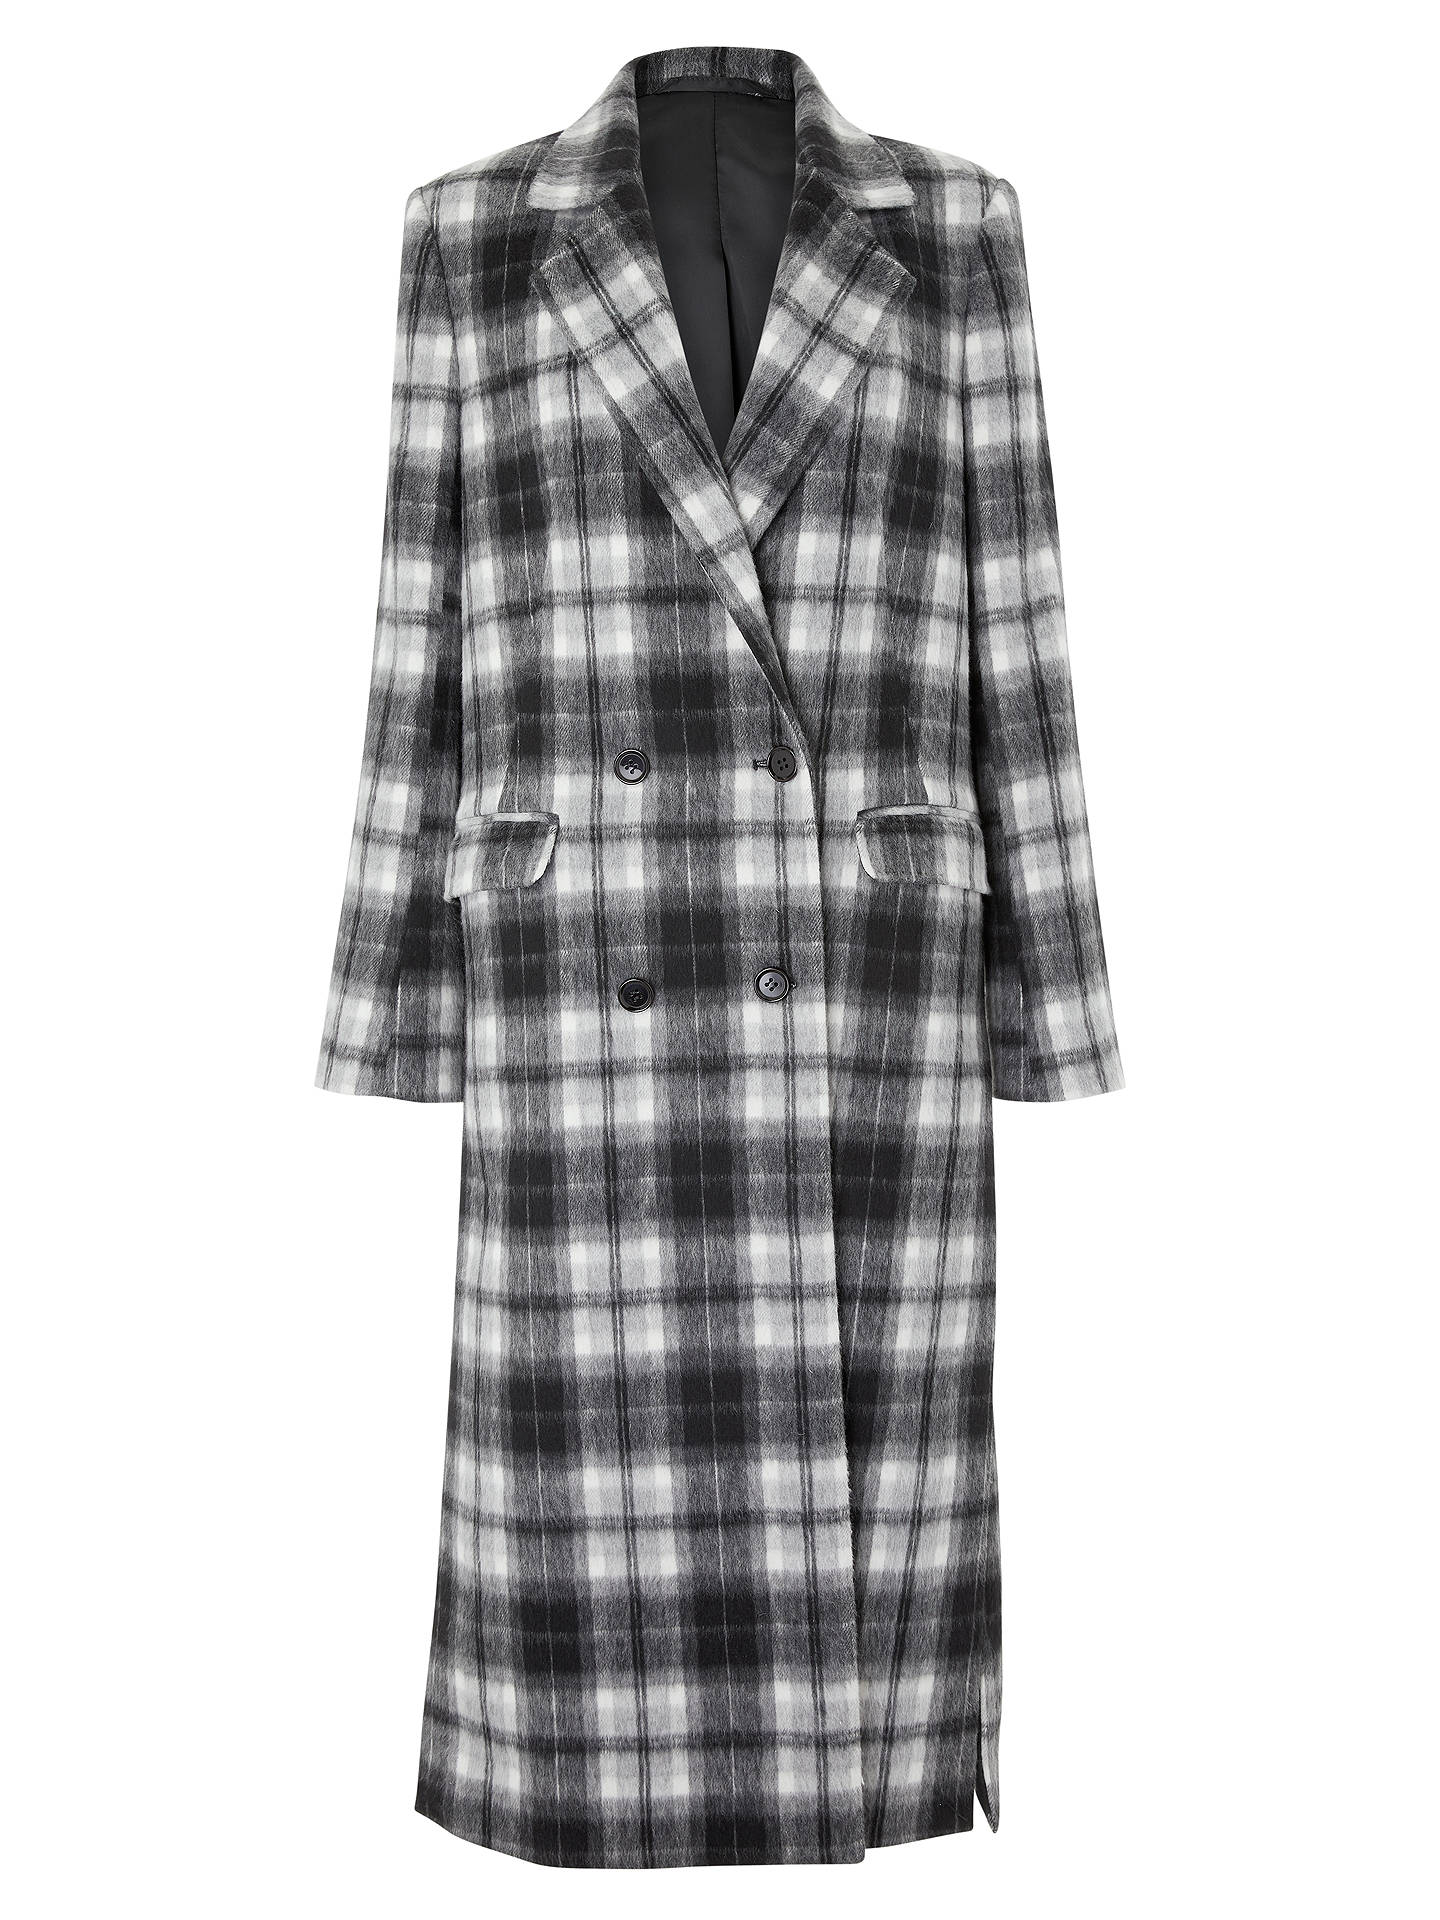 BuyJohn Lewis & Partners Double Breasted Coat, Grey Check, 8 Online at johnlewis.com